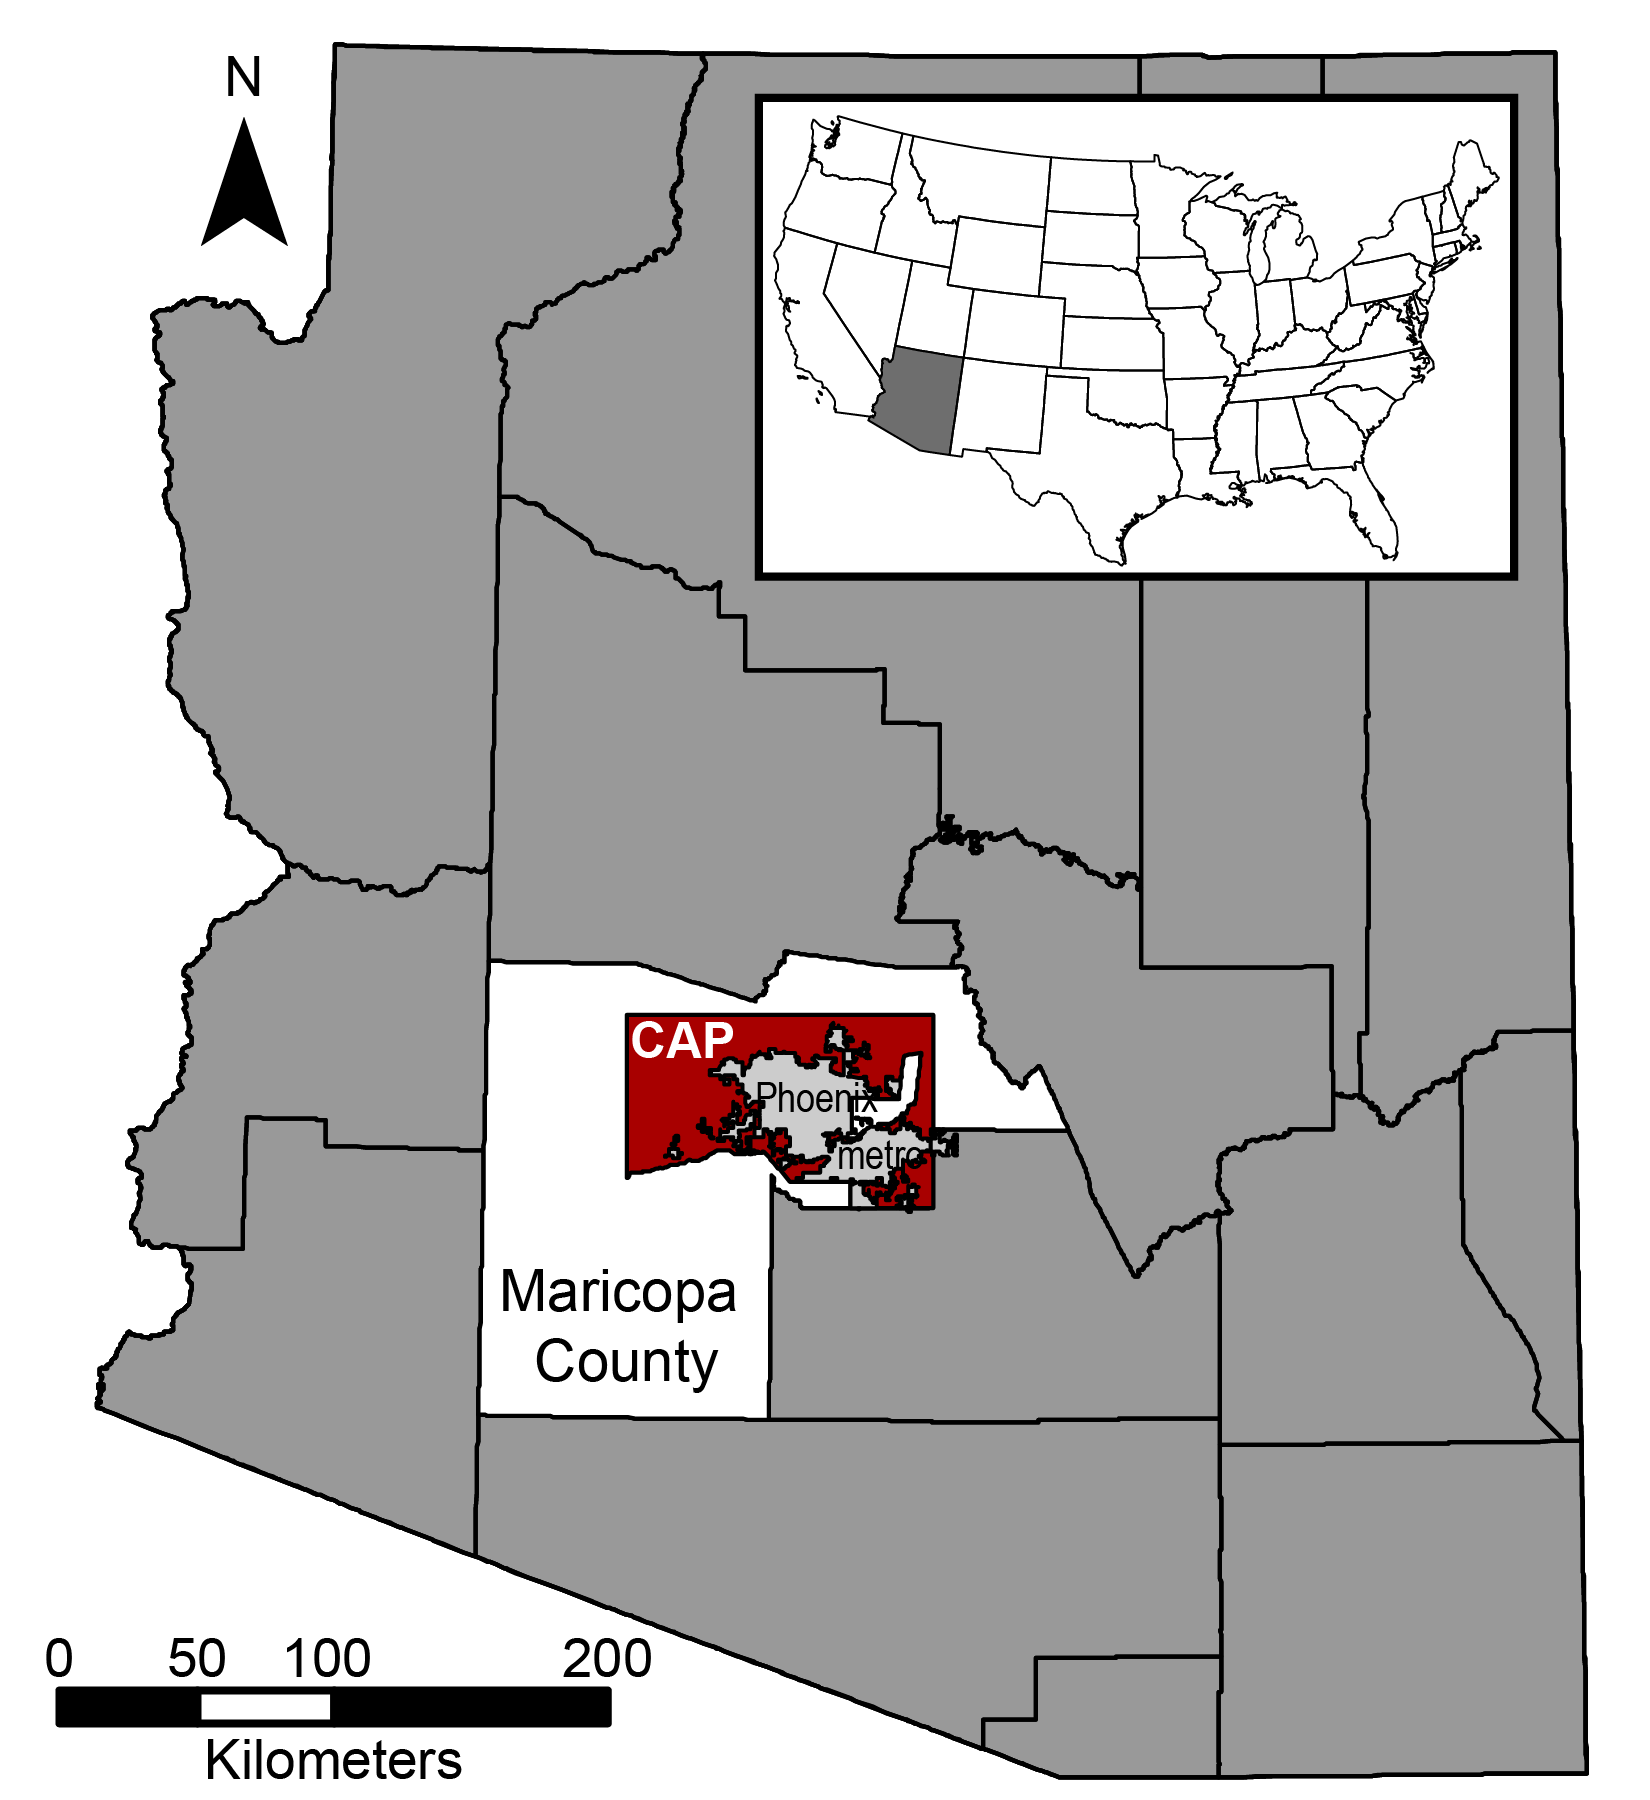 CAP area Arizona map